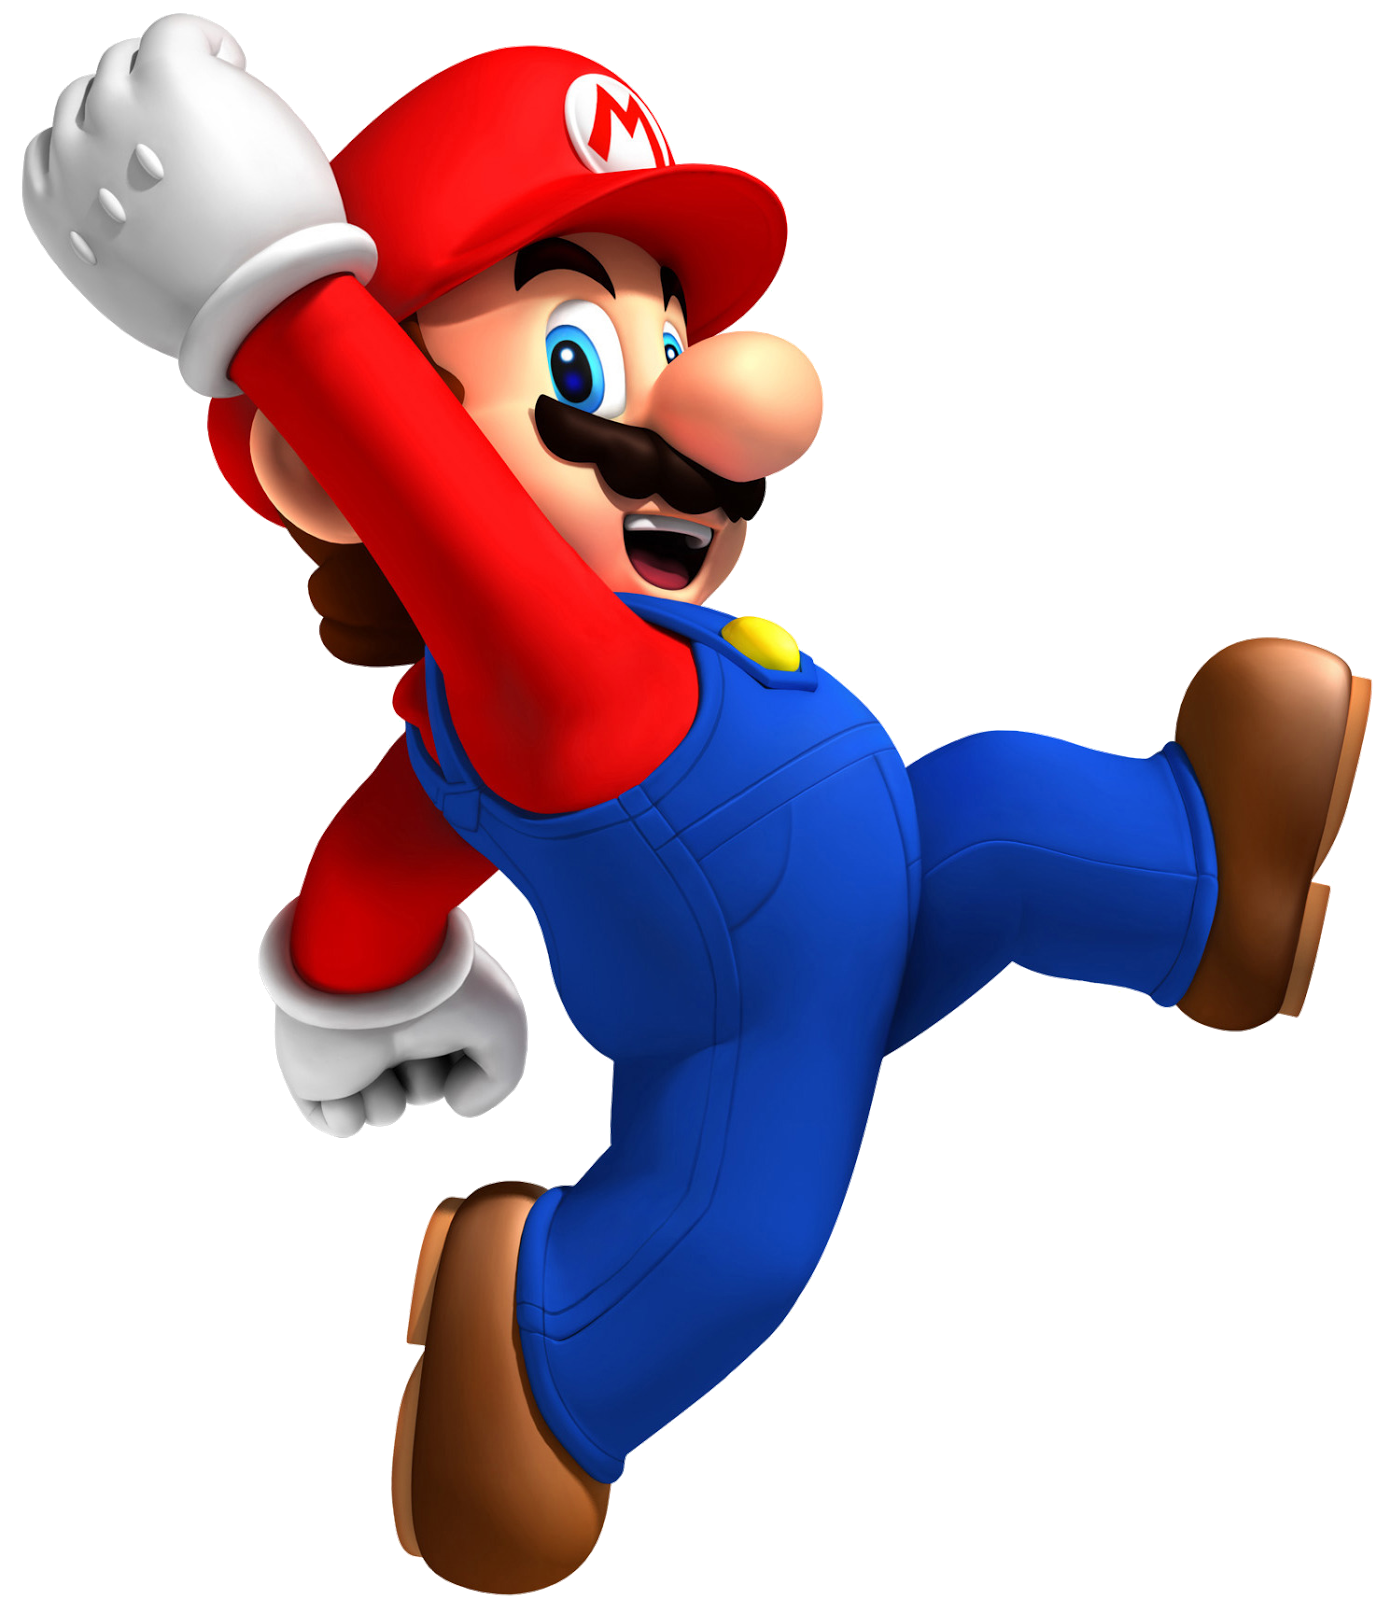 how tall is mario mario